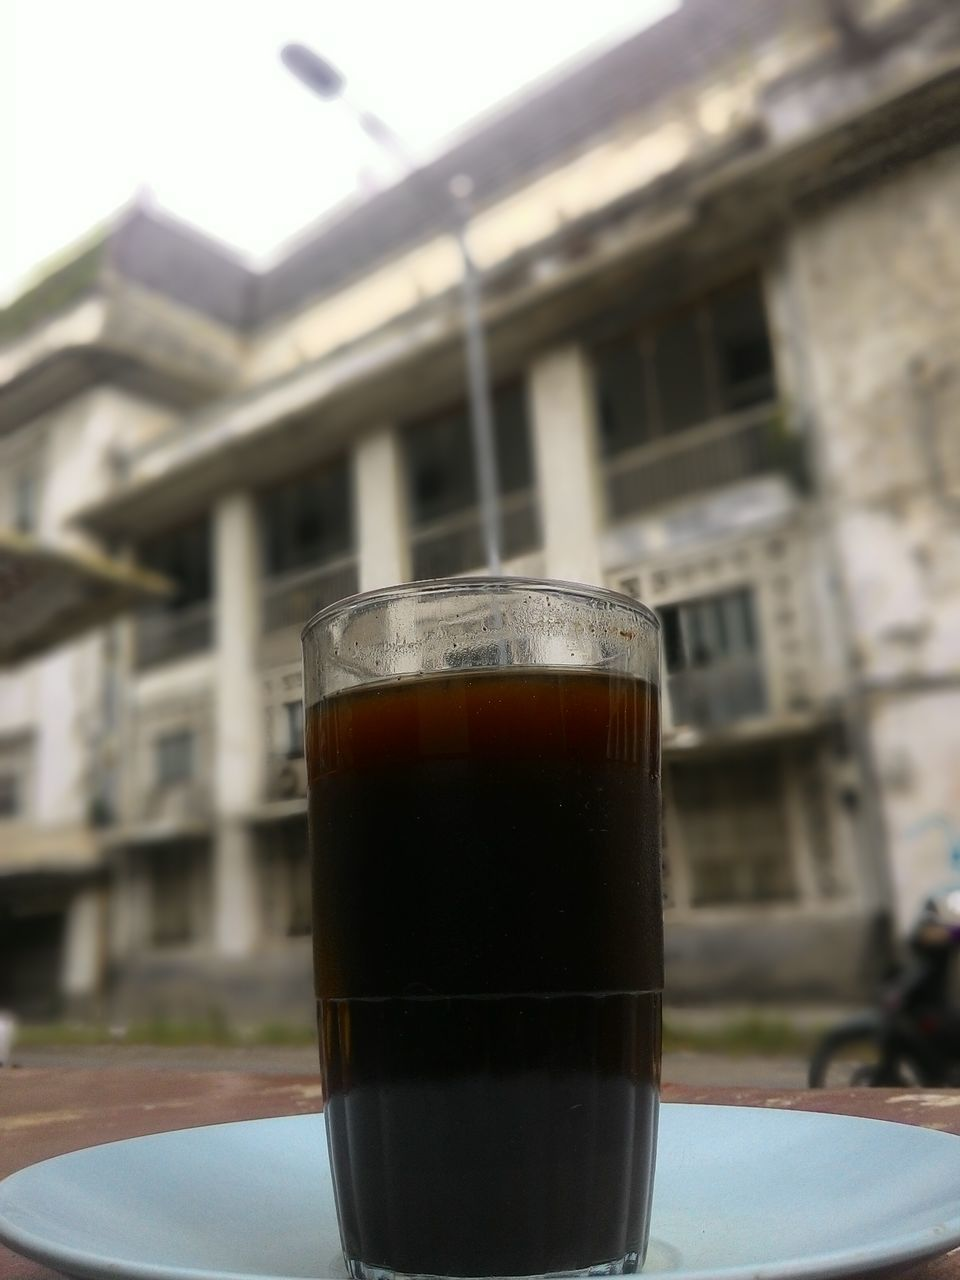 drink, food and drink, coffee - drink, building exterior, refreshment, built structure, no people, close-up, focus on foreground, architecture, drinking glass, frothy drink, table, day, outdoors, freshness, sky